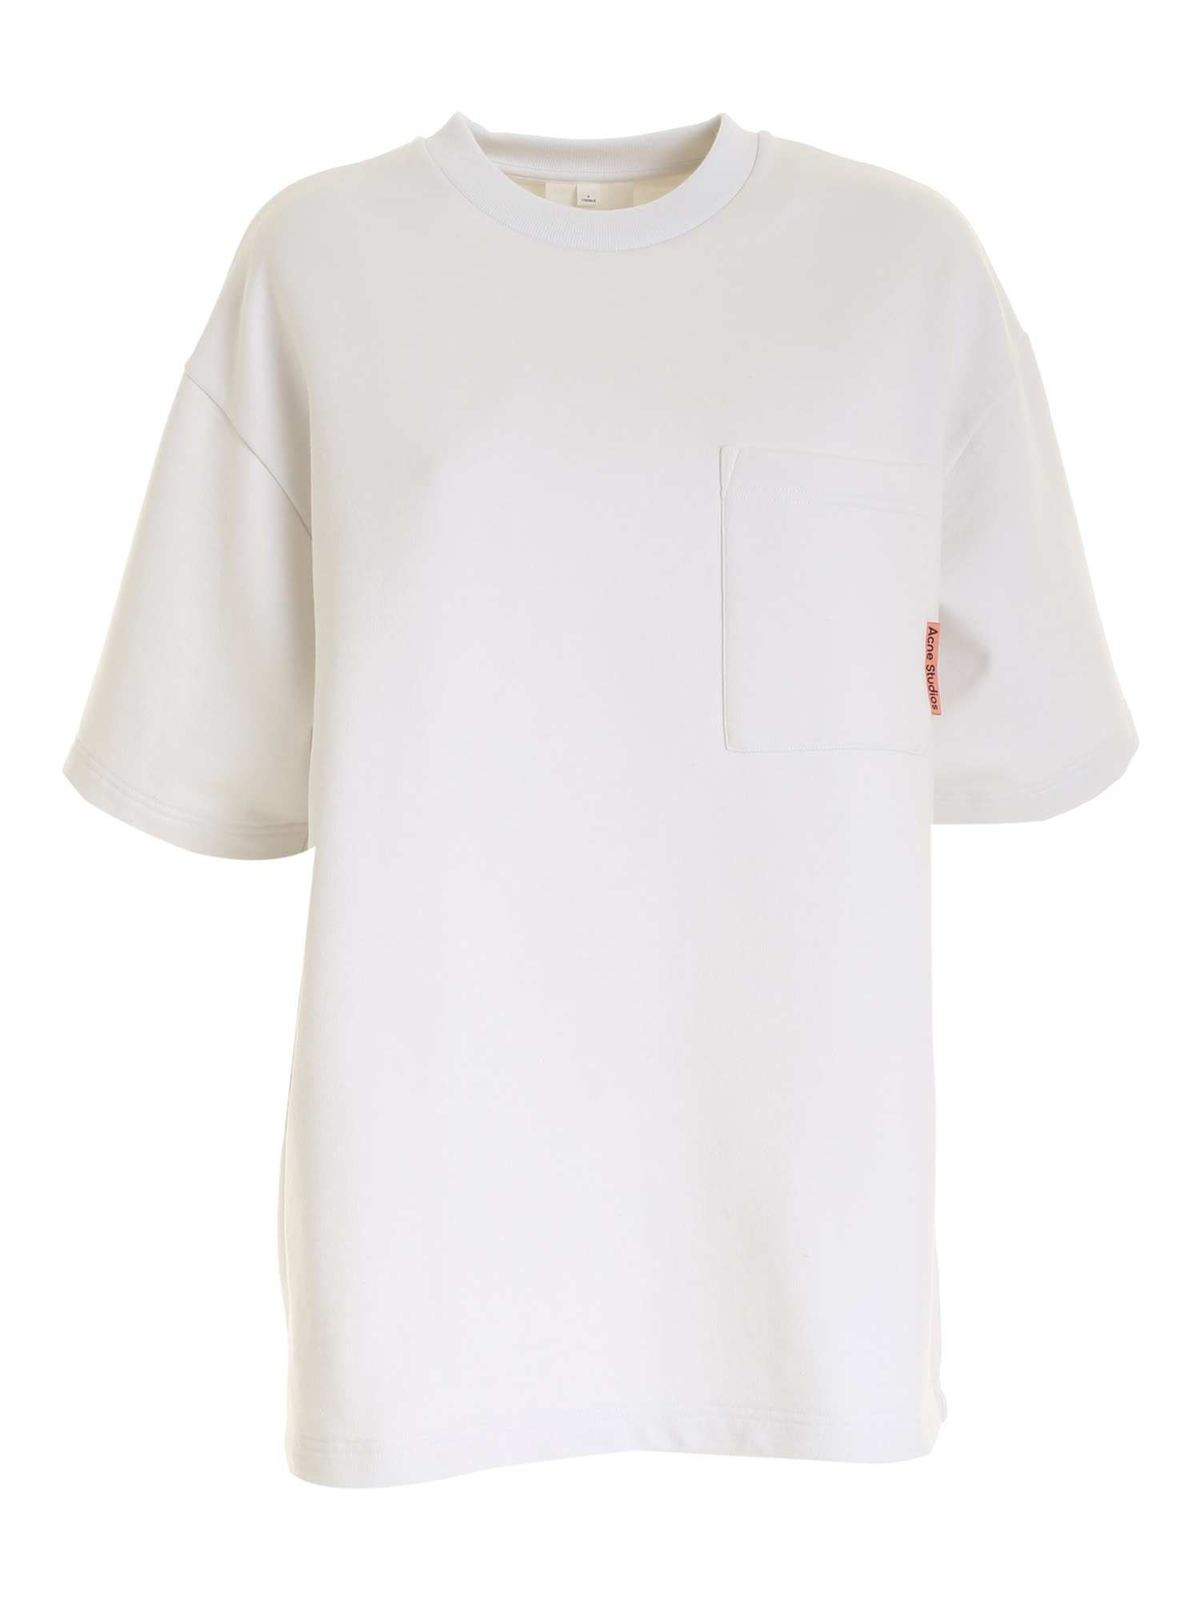 Acne Studios OVERSIZE SHORT SLEEVES SWEATSHIRT IN WHITE